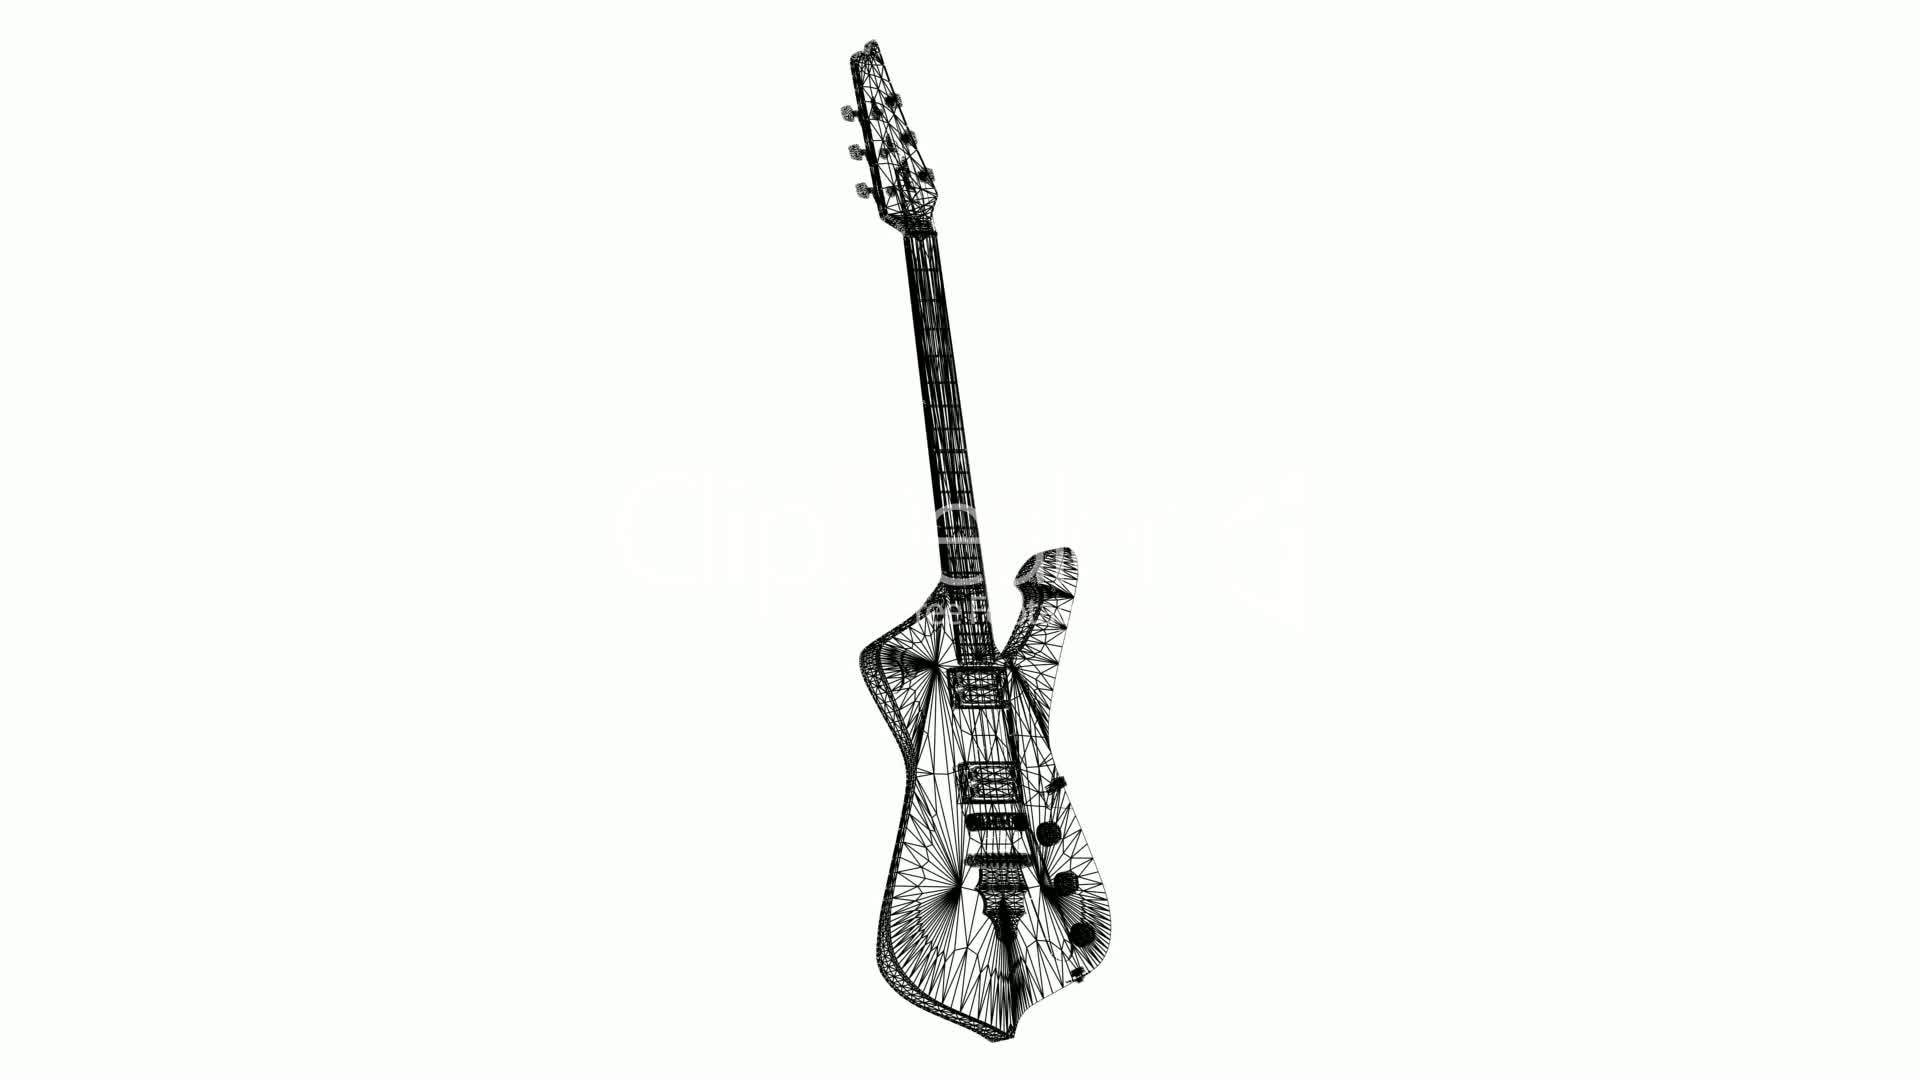 Rotation Of 3d Electric Guitar Sic Musical Instrument String Rock Electric Art Sound Acoustic